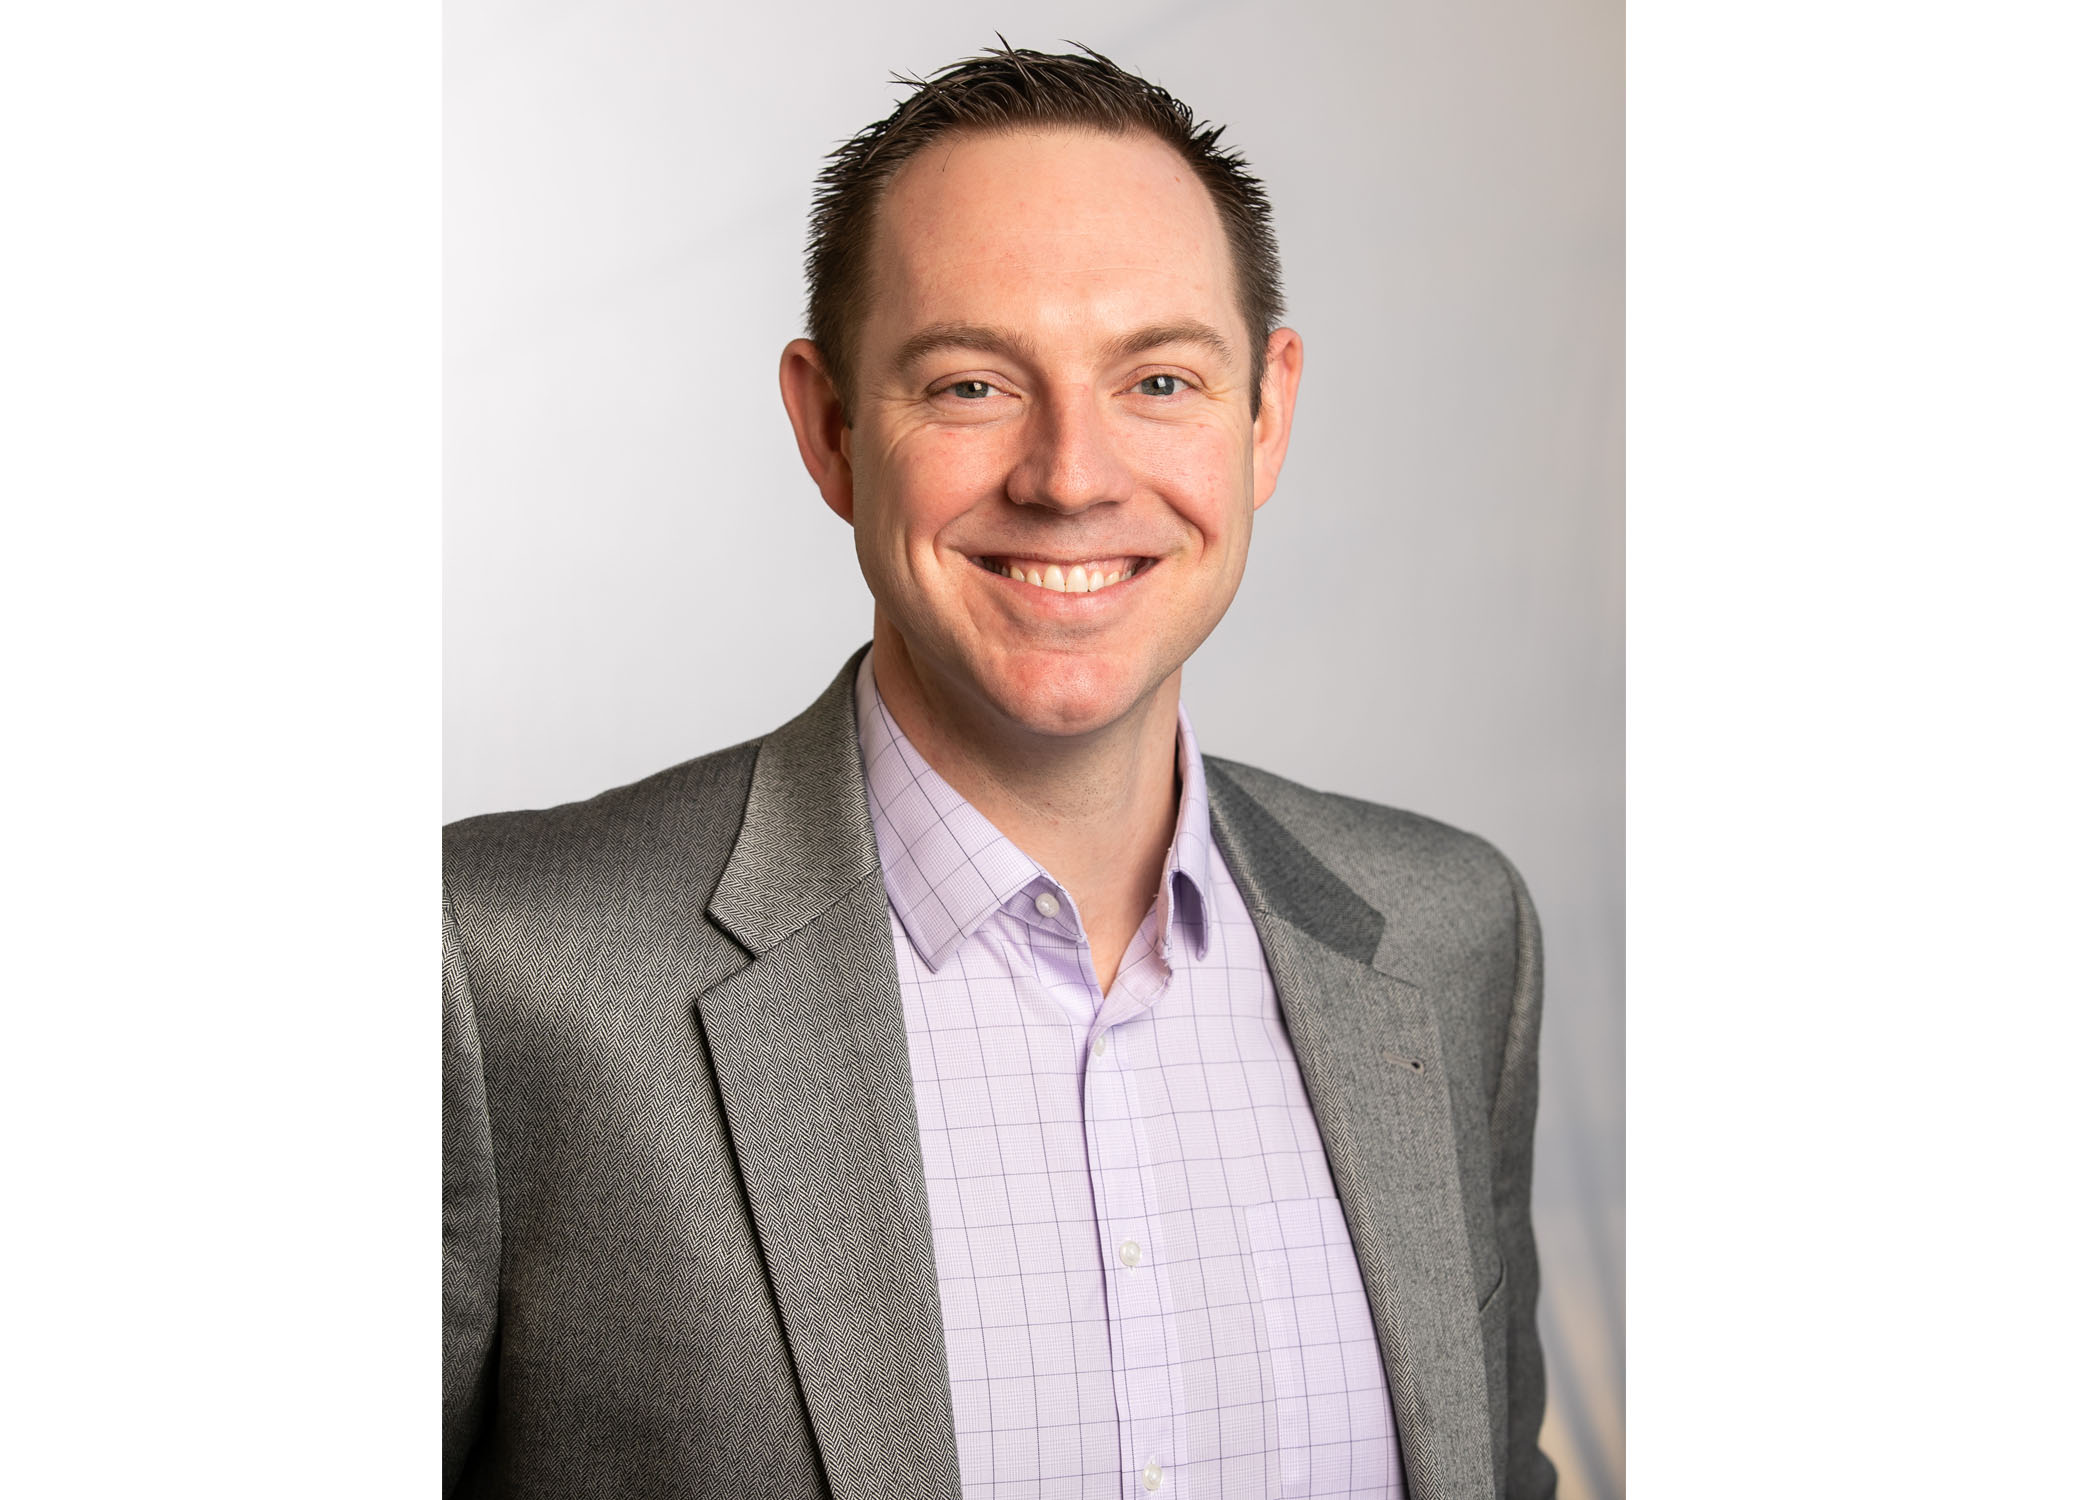 Phillip Dailey has been promoted to Executive Vice President of National Accounts of DuraServ Corp.